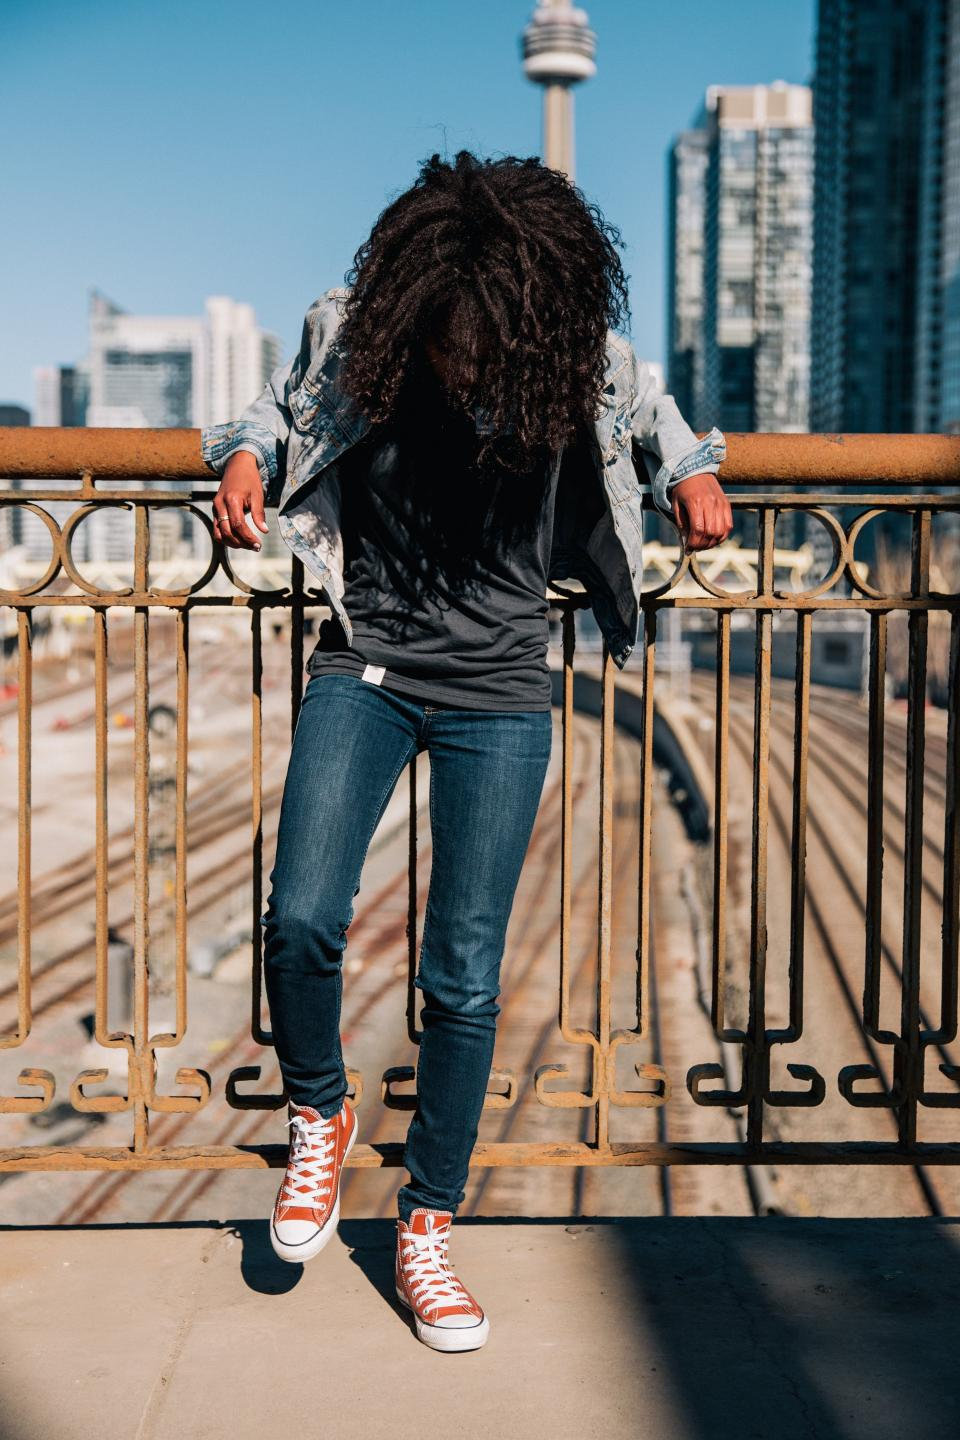 people man guy curly hair red sneakers sunny day daylight bridge architecture buildings city urban skyline steel metal railway track outdoors